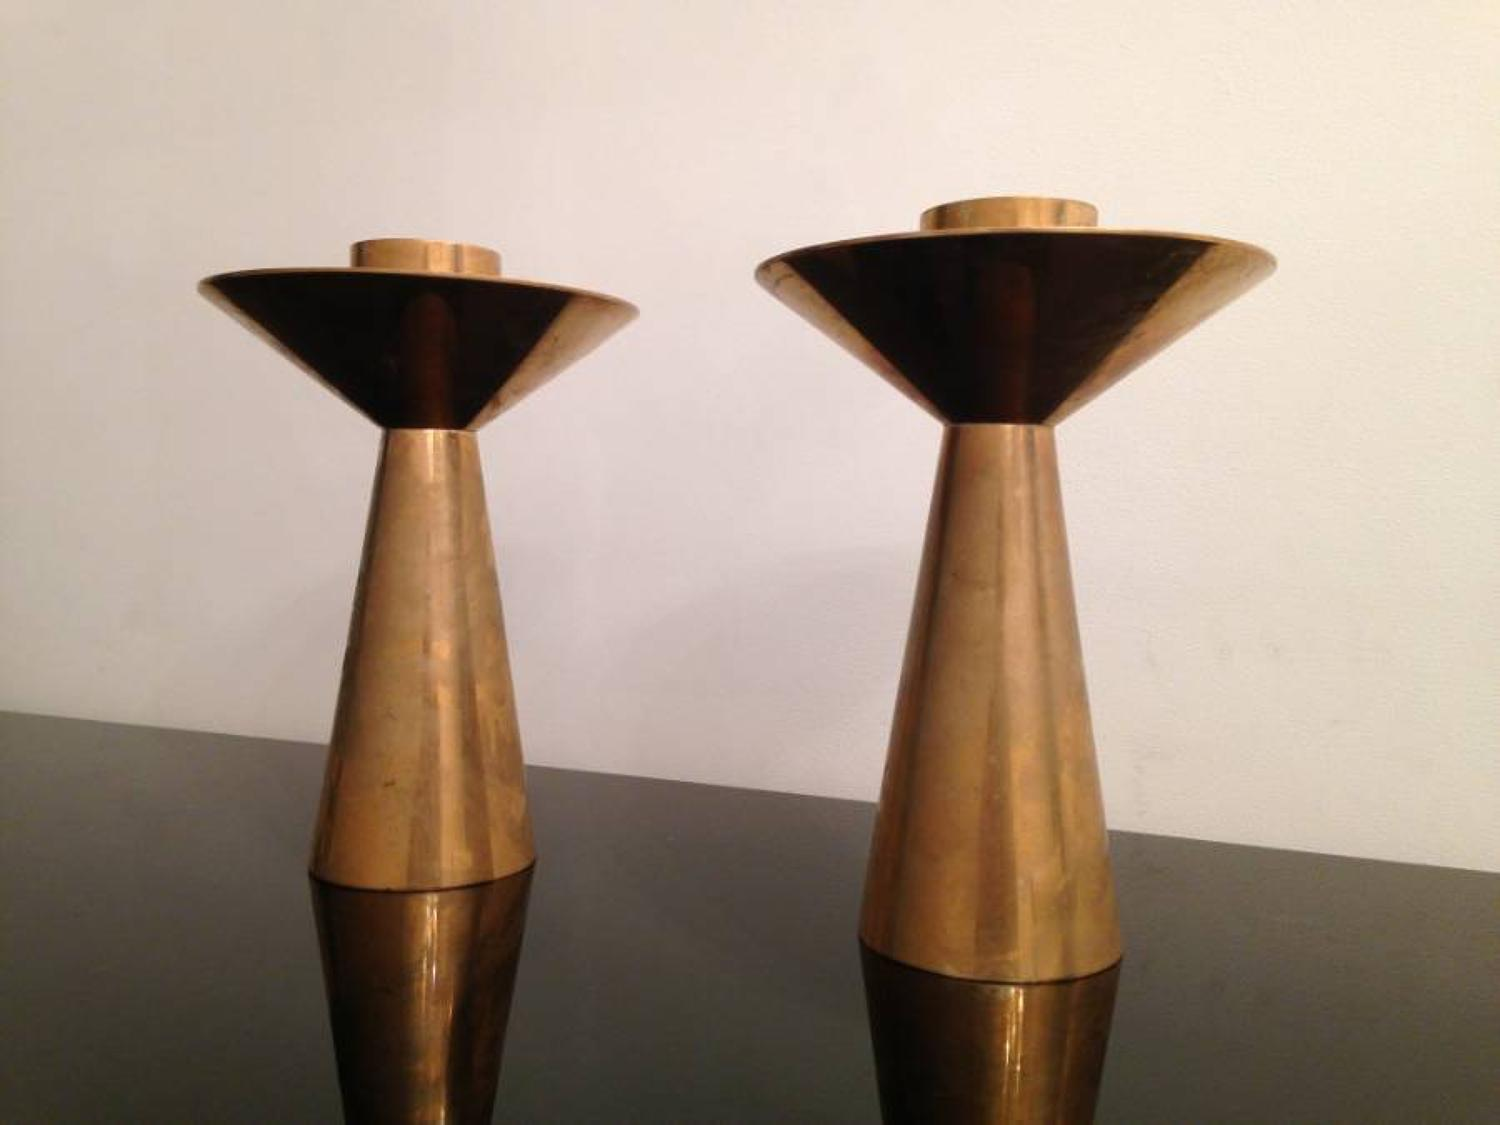 A pair of brass candle holders